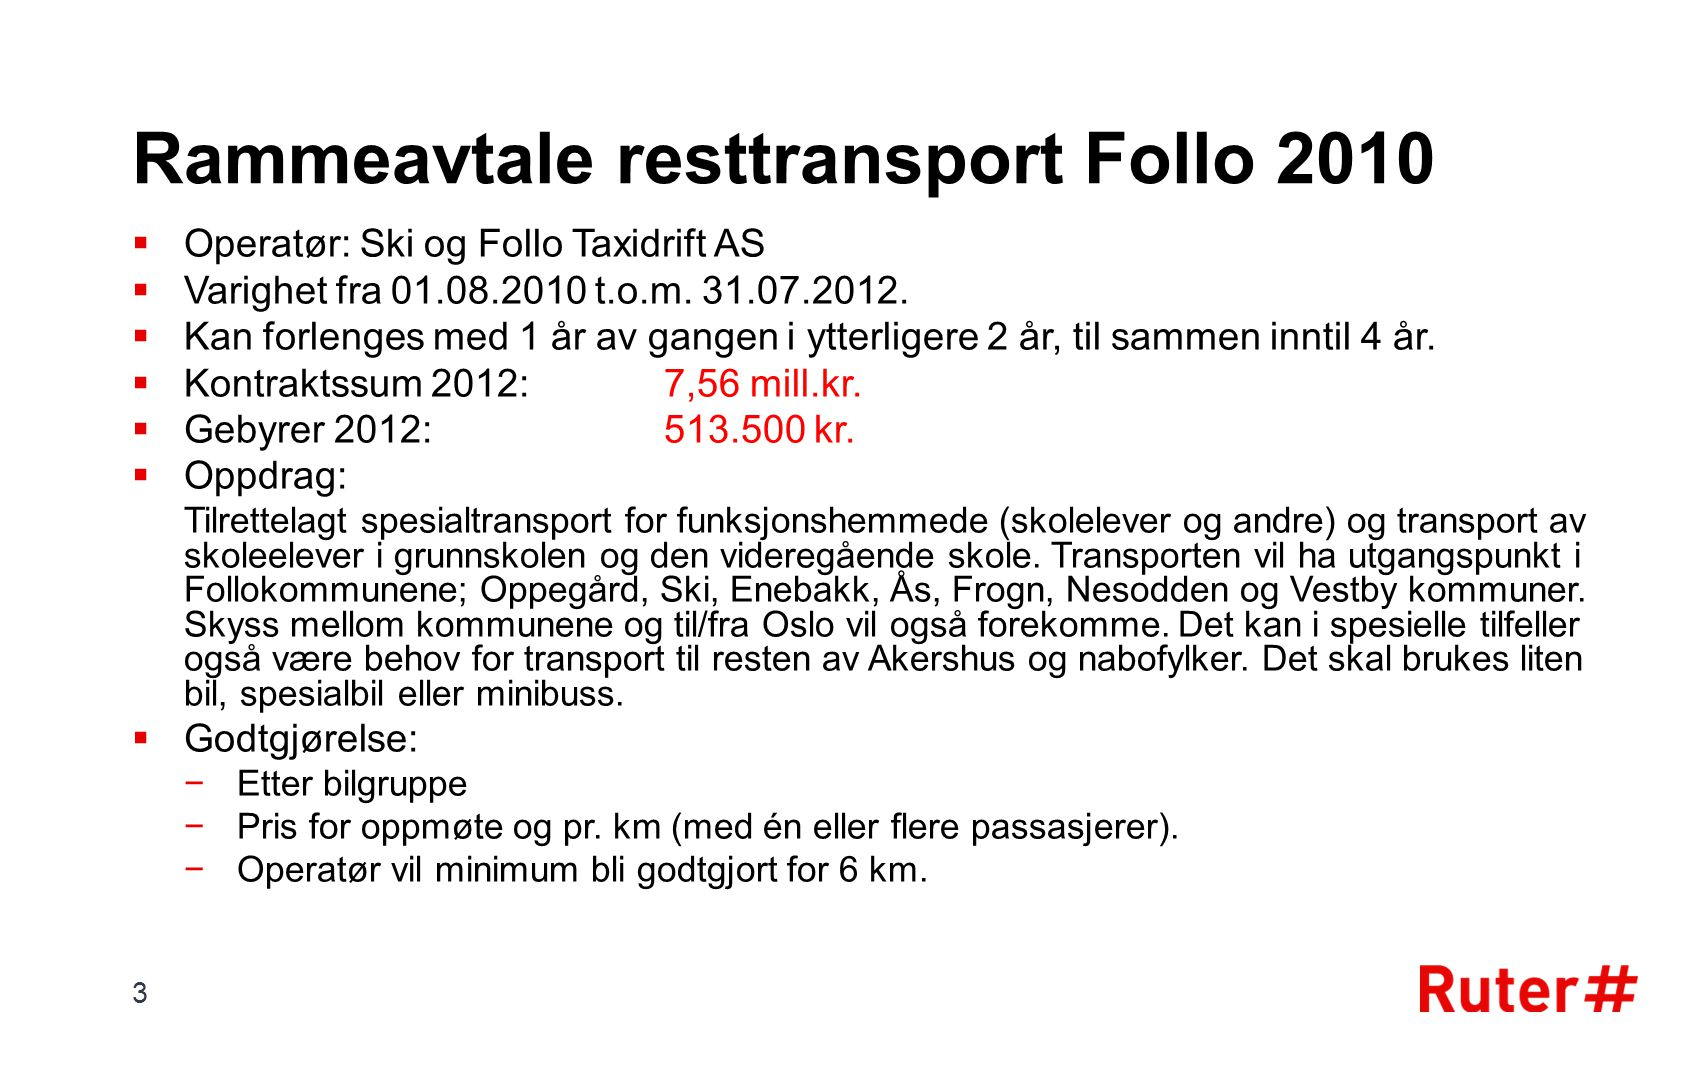 Rammeavtale resttransport Follo 2010